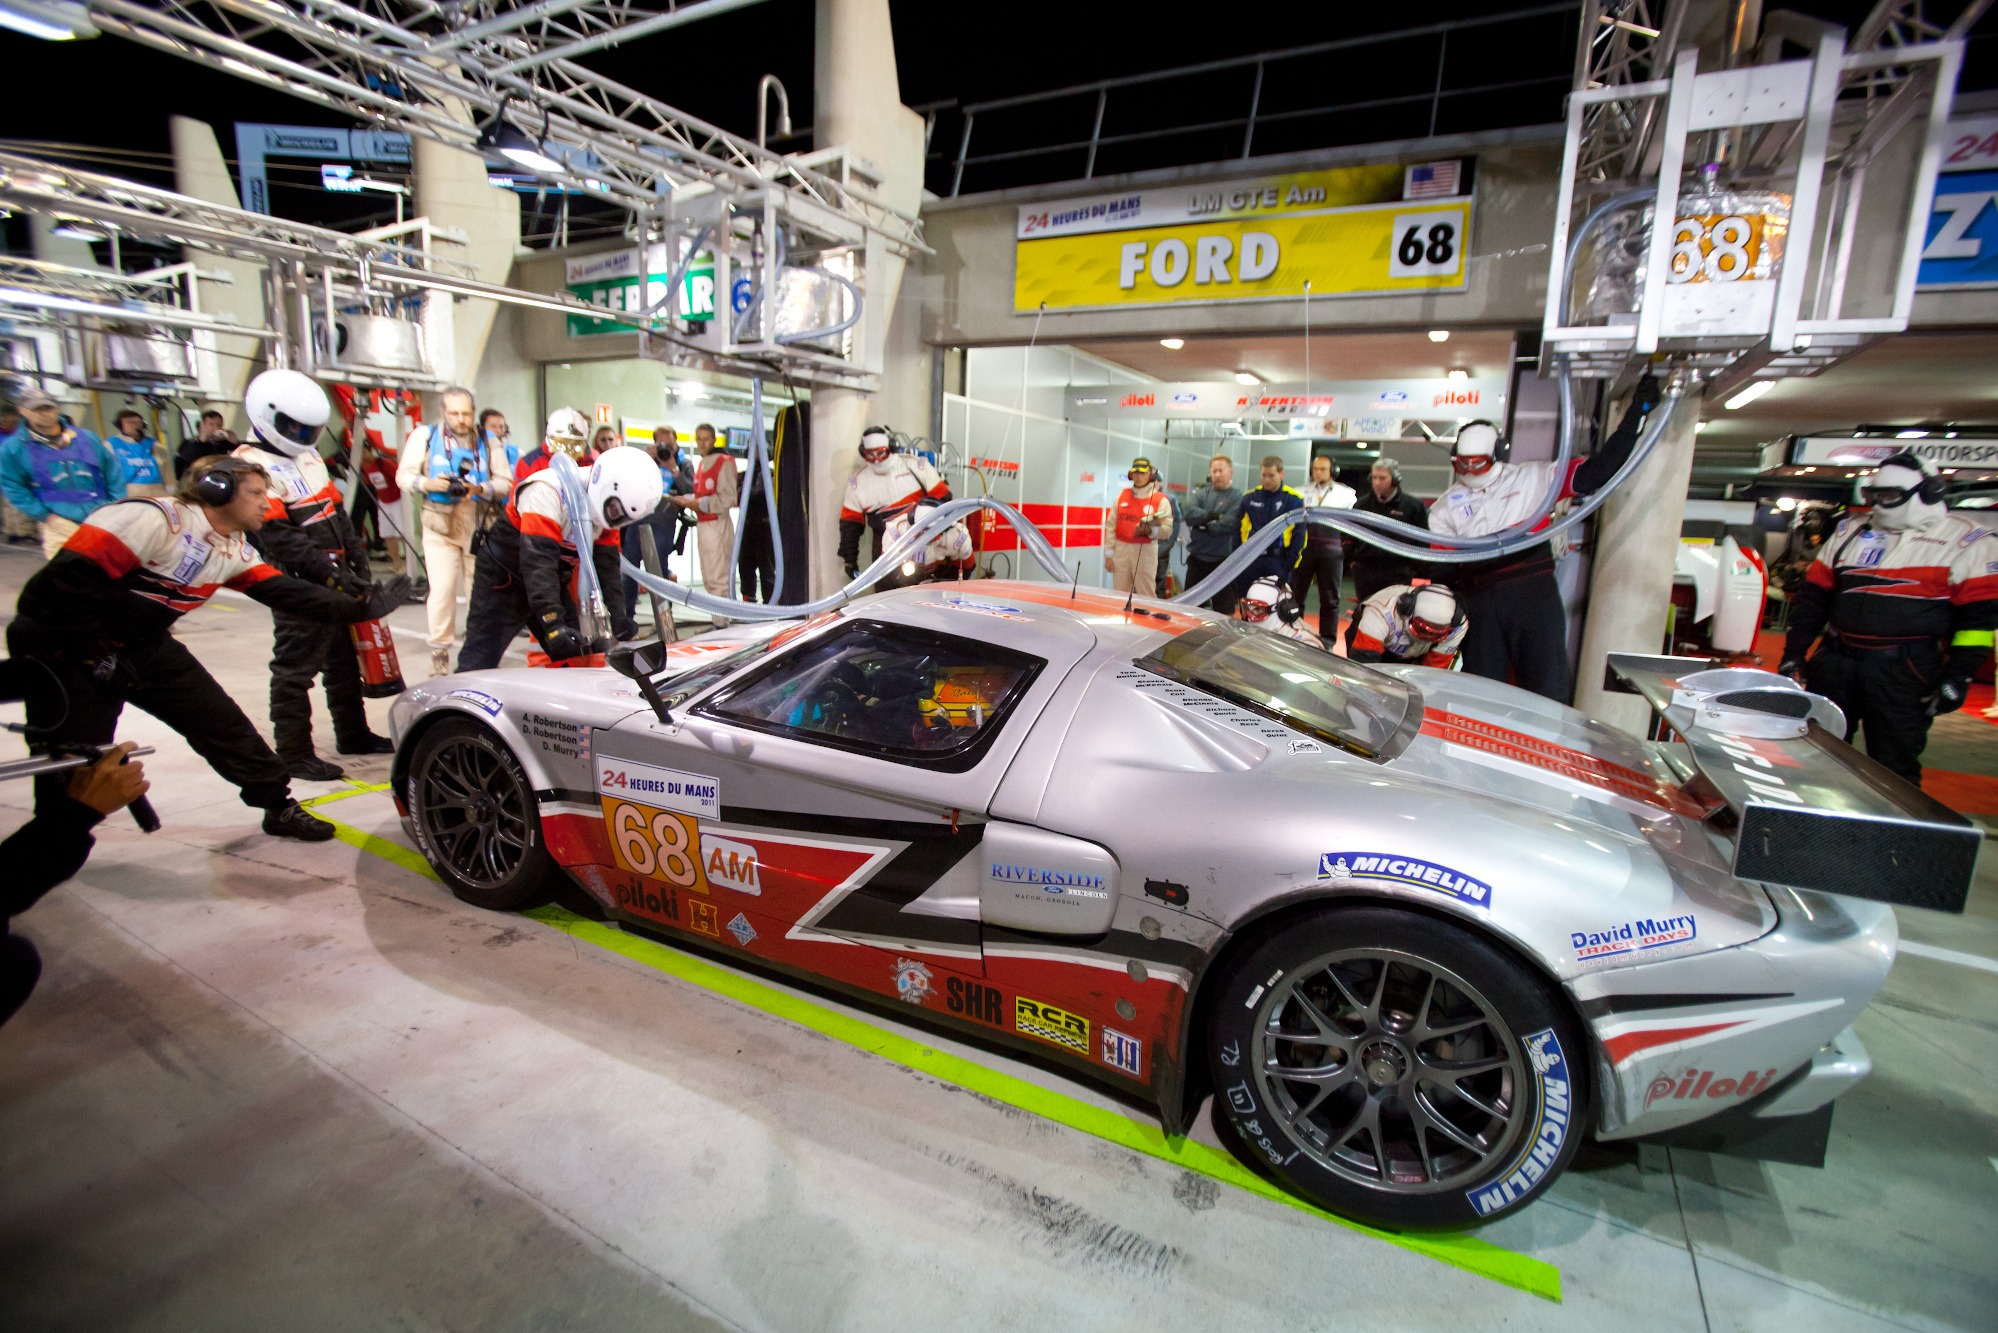 Robertson husband and wife team claimed GTE Am podium at Le Mans in 2011